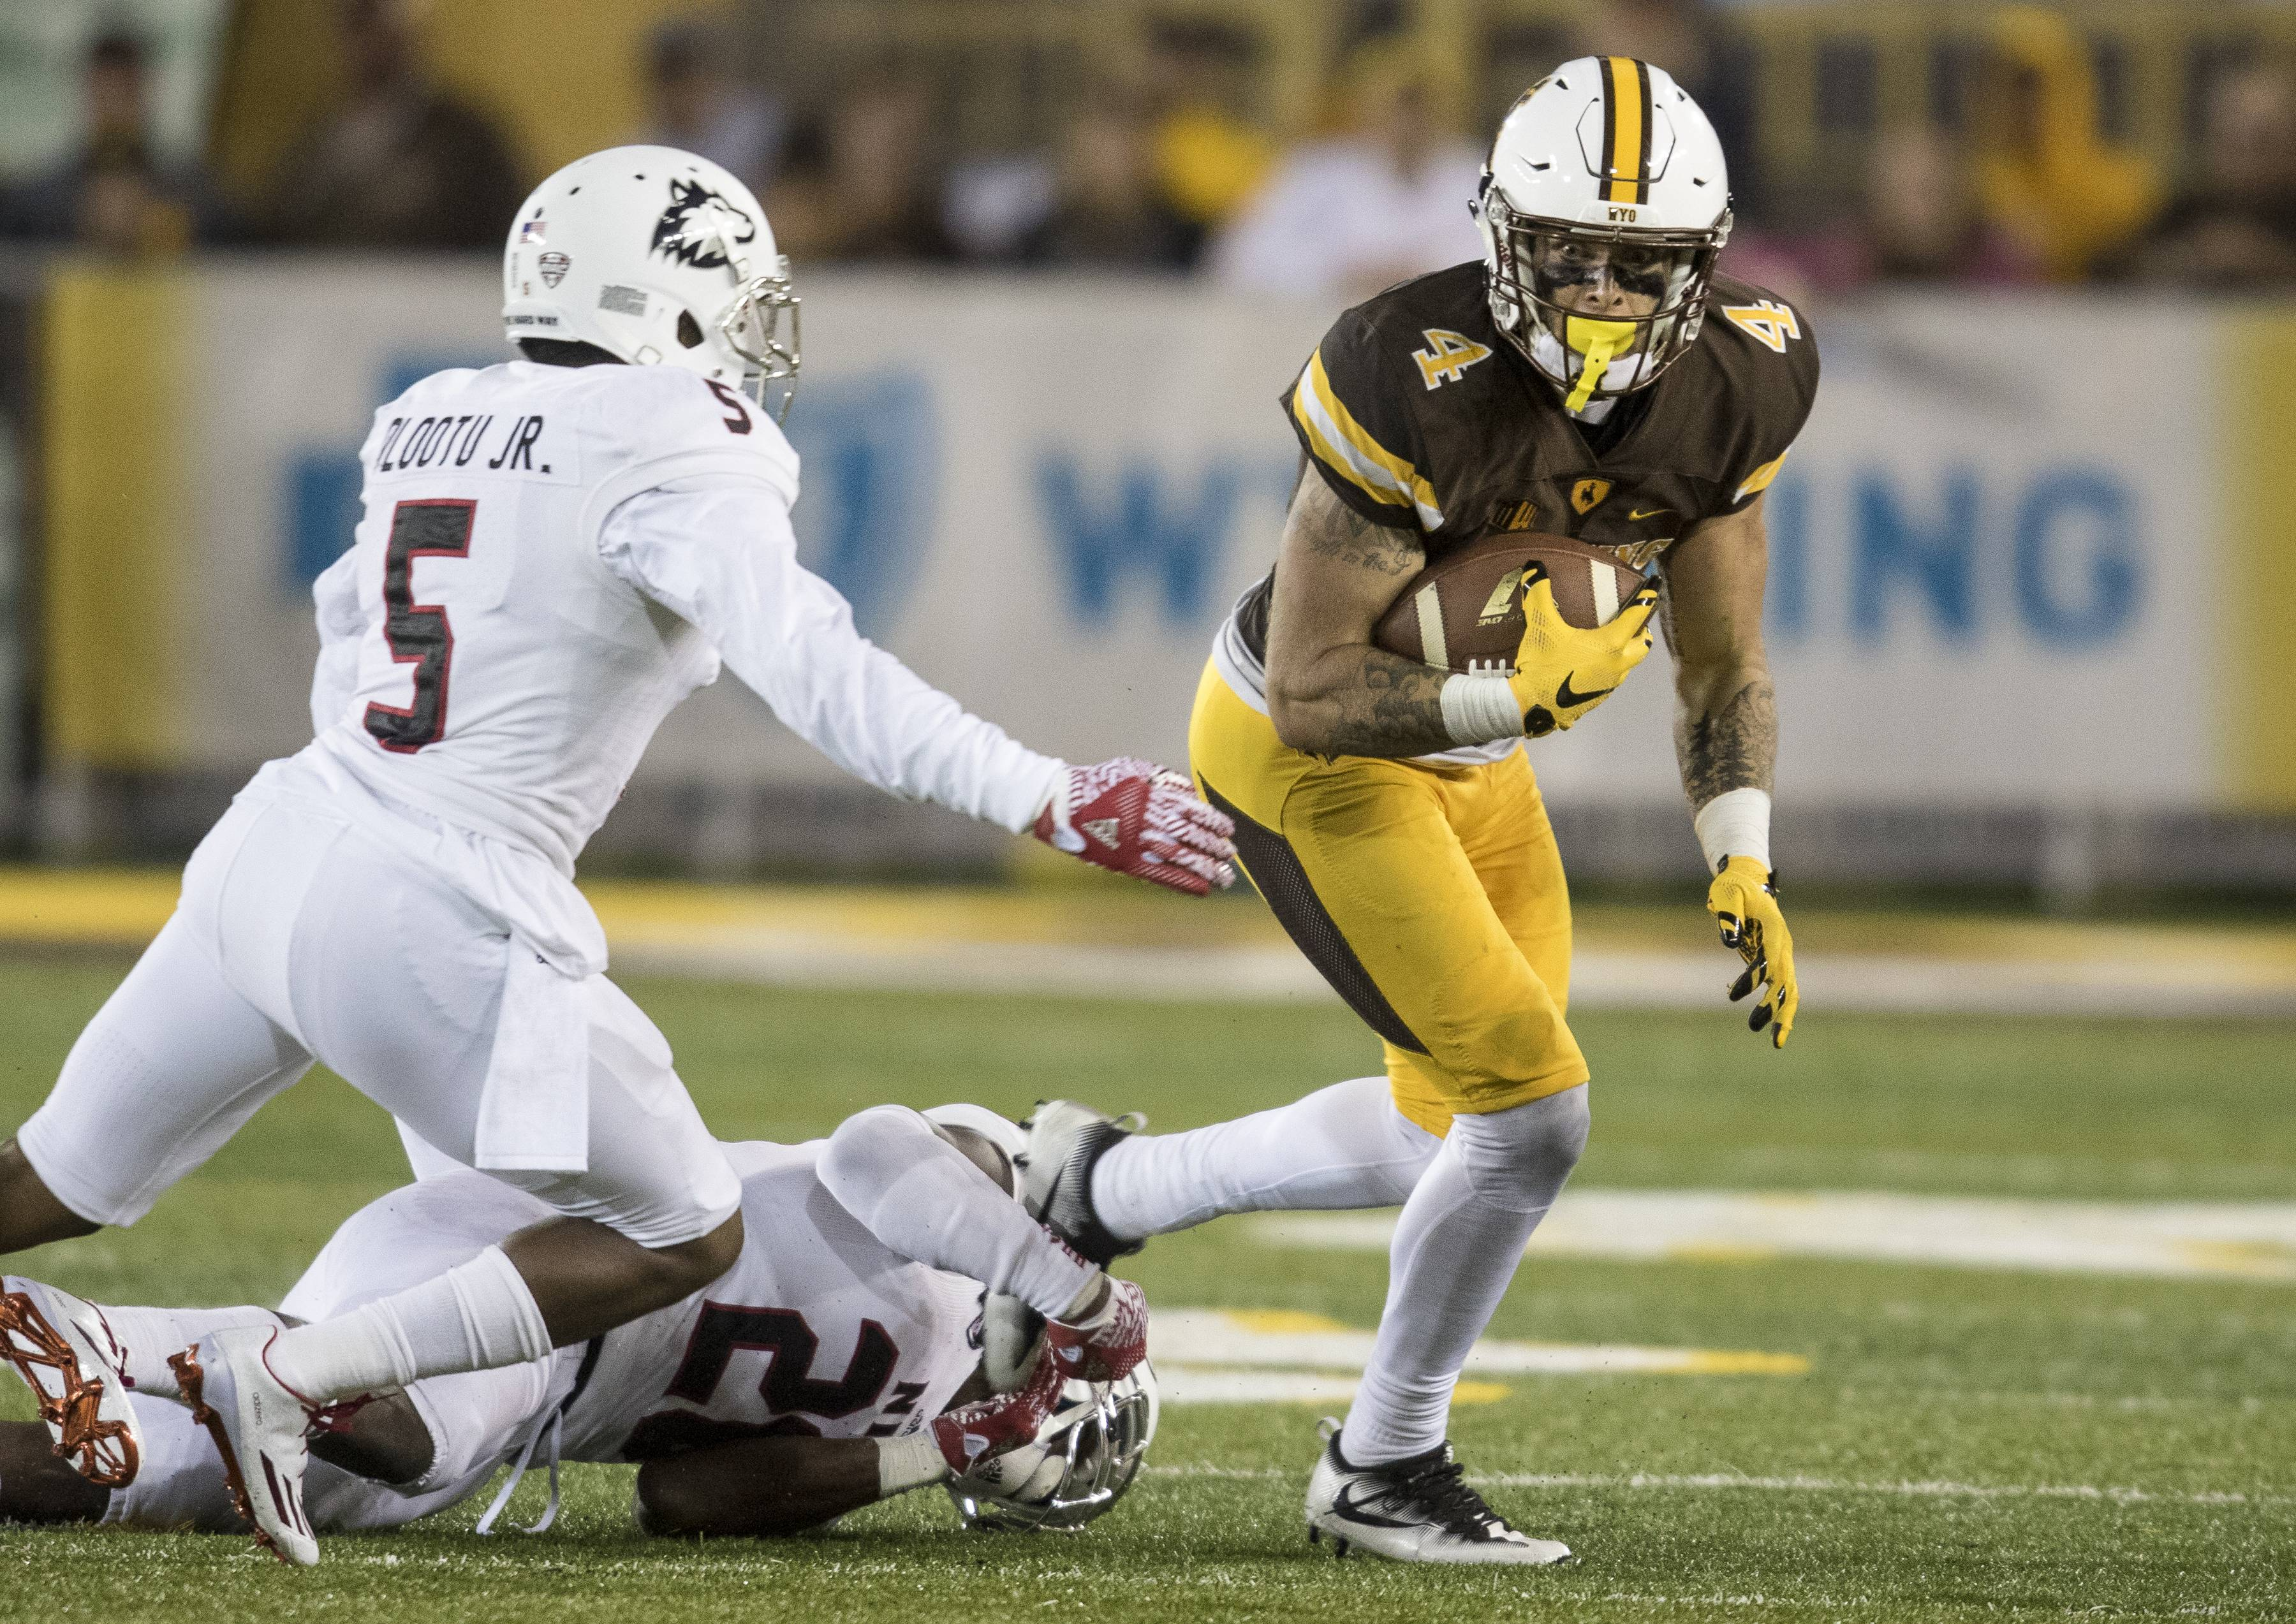 Wyoming wide receiver Tanner Gentry runs with the ball during an NCAA college football game against Northern Illinois Saturday, Sept. 4, 2016 at the War Memorial Stadium in Laramie, Wyo. (Hugh Carey/The Wyoming Tribune Eagle via AP)